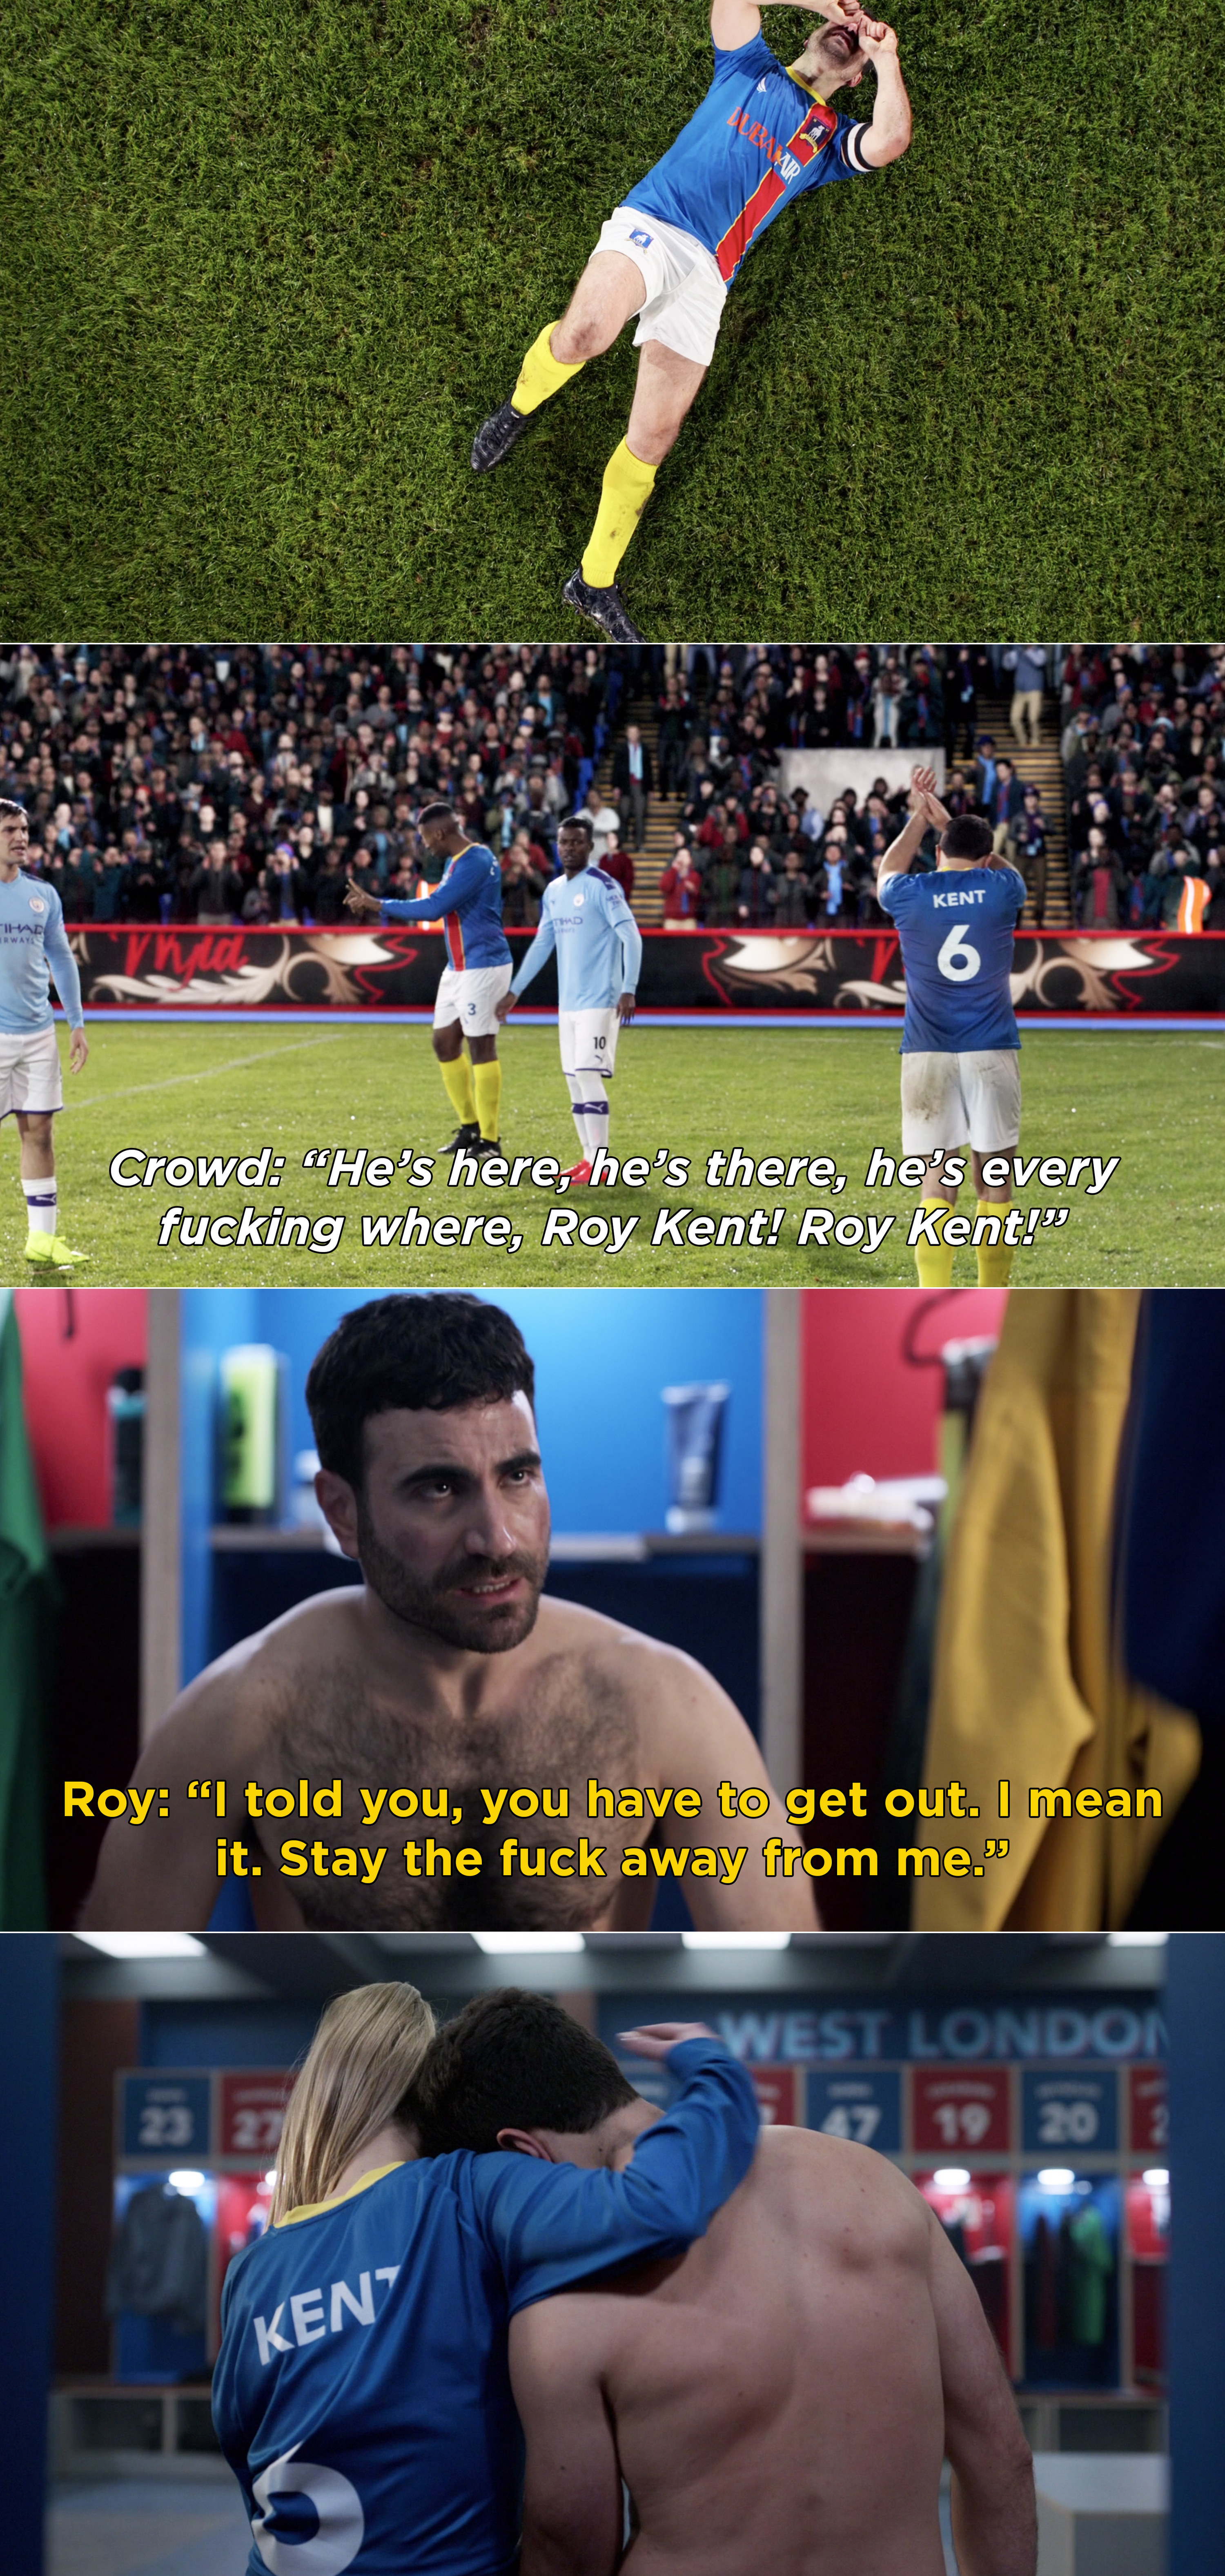 The crowd cheering for Roy after he gets injured, and Keeley sitting with Roy in the locker room